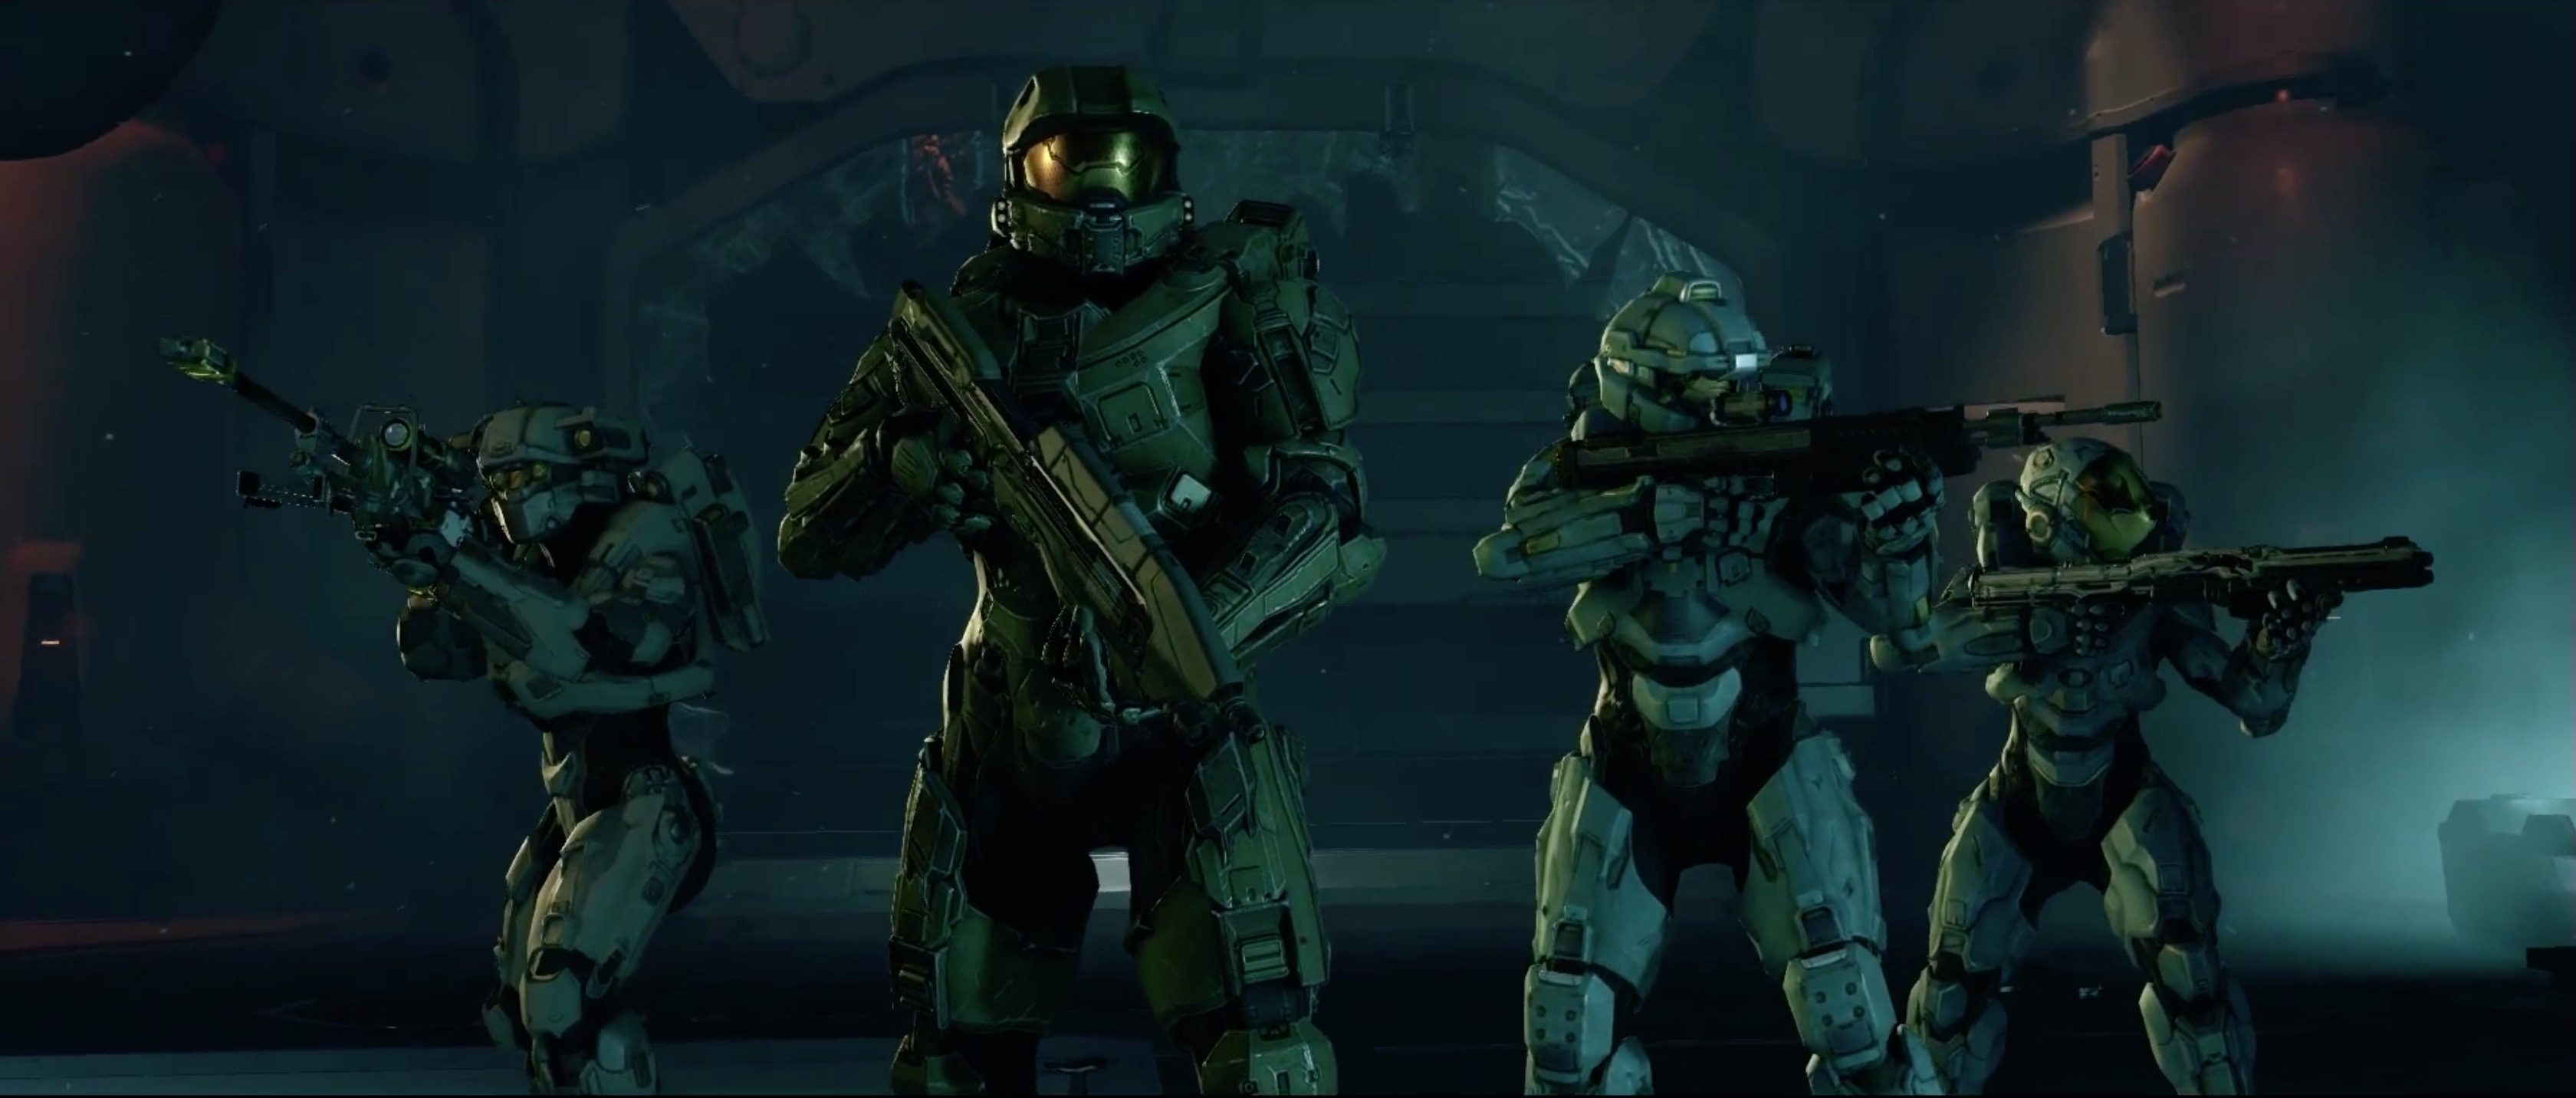 Halo 5 Blue Team Opening Cinematic 5